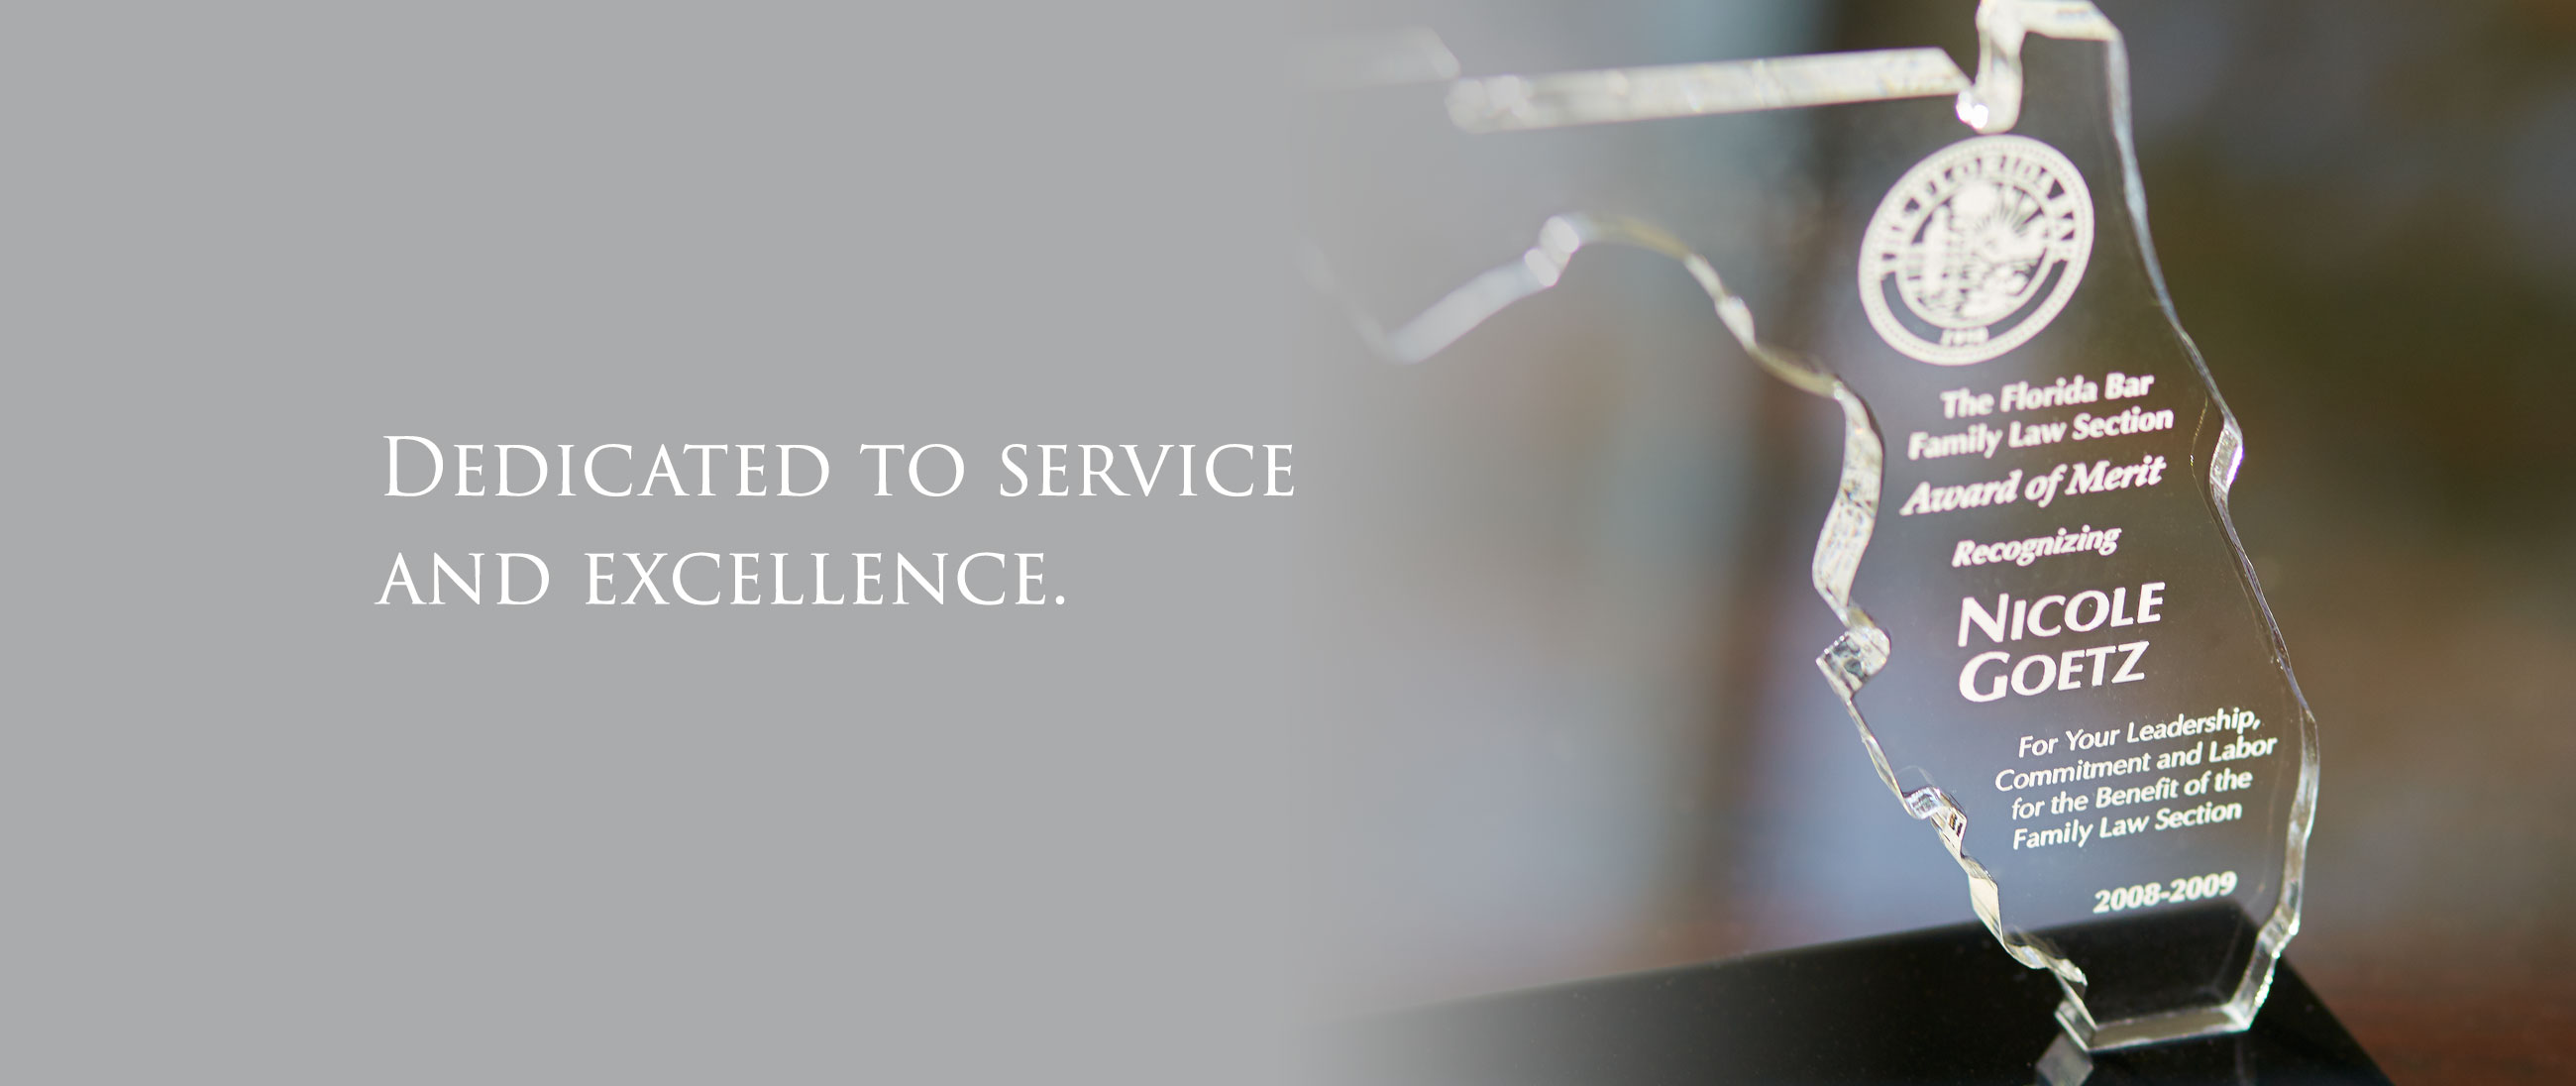 Dedicated to Service and Excellence